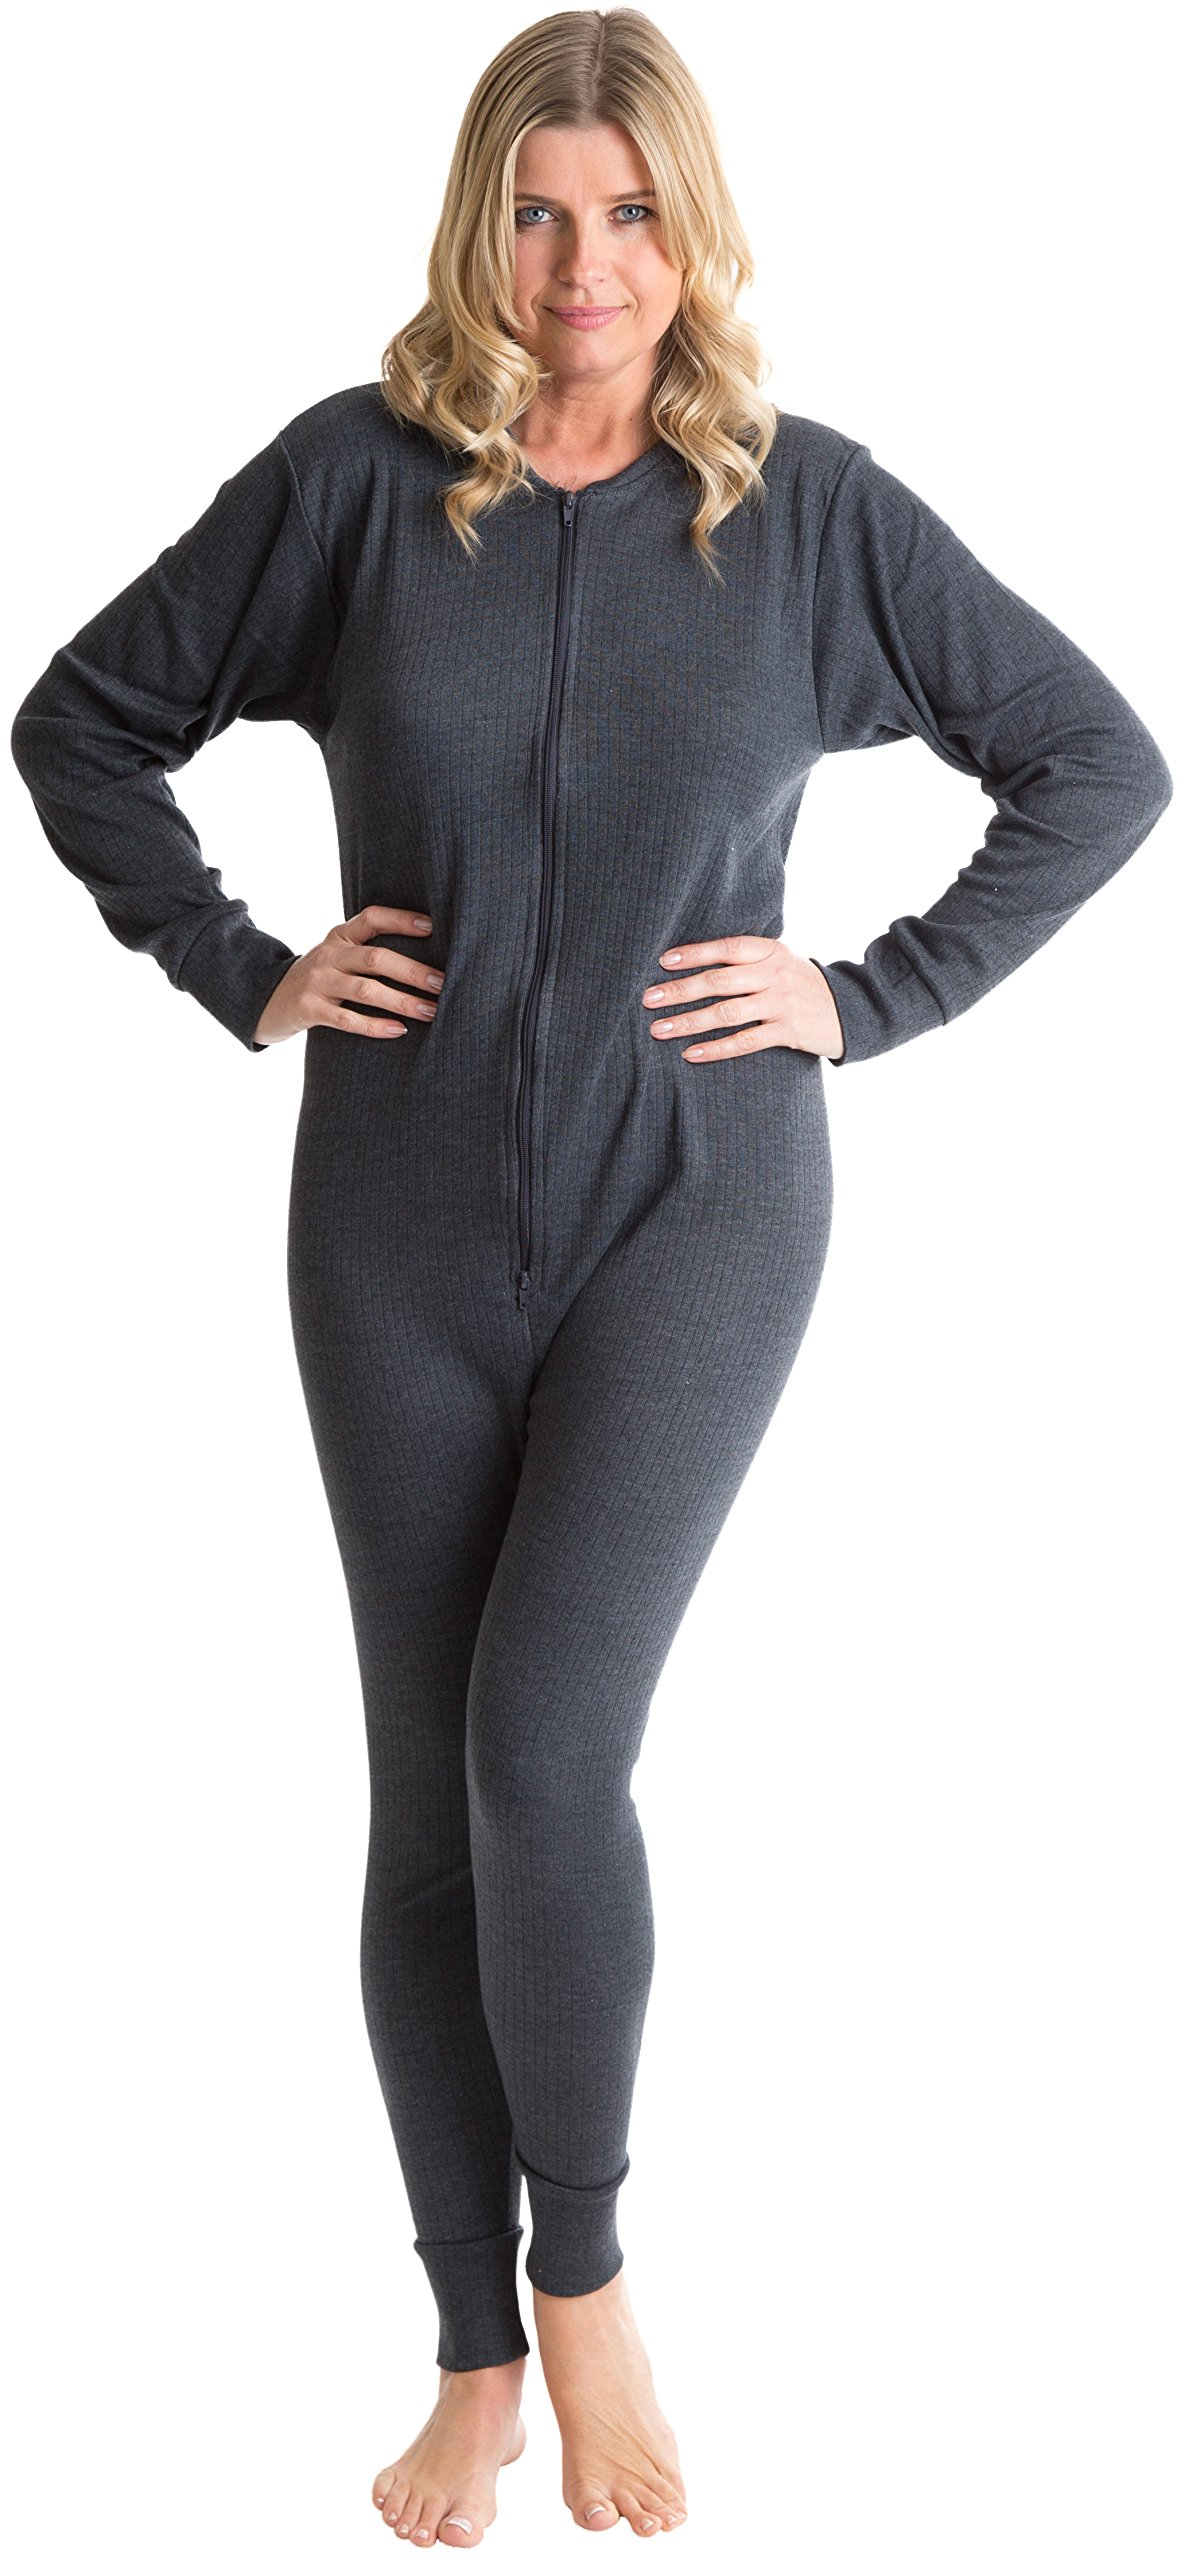 6 Pack Octave Womens Thermal Underwear All In One Union Suit / Thermal Body Suit (Small, Charcoal)